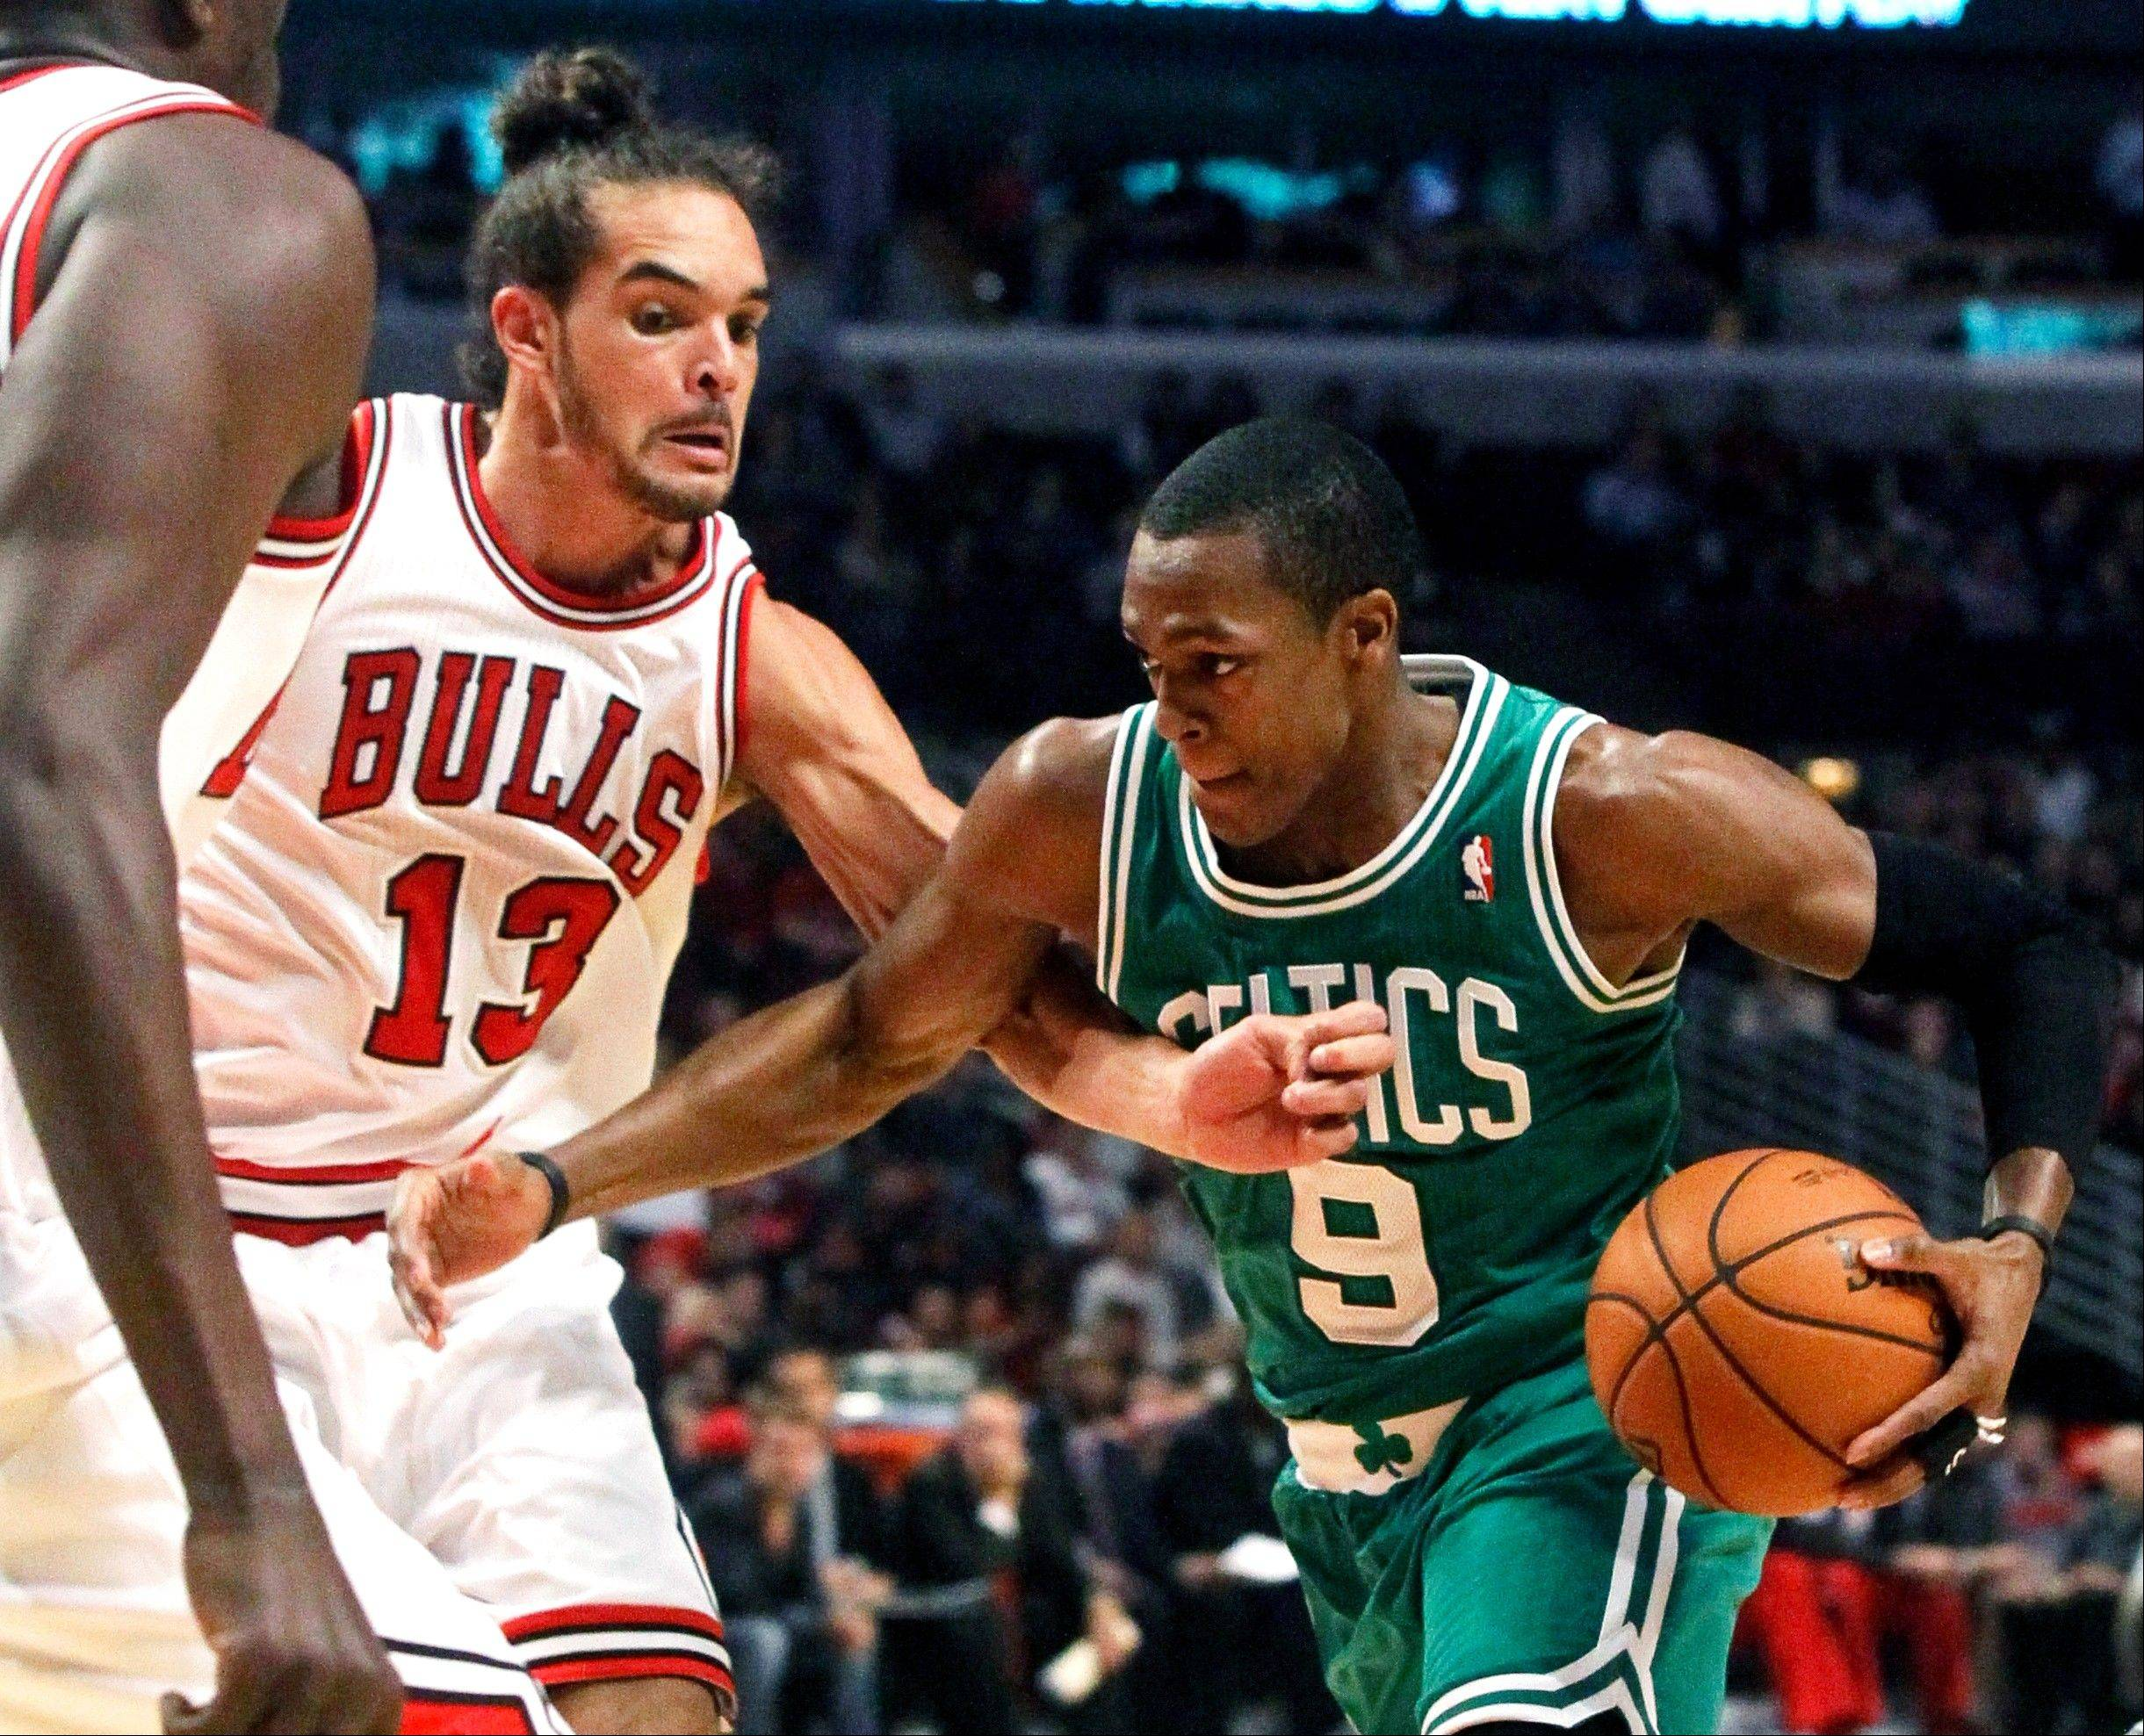 Boston Celtics guard Rajon Rondo (9) drives on Chicago Bulls center Joakim Noah during the first half of an NBA basketball game, Monday, Nov. 12, 2012, in Chicago.